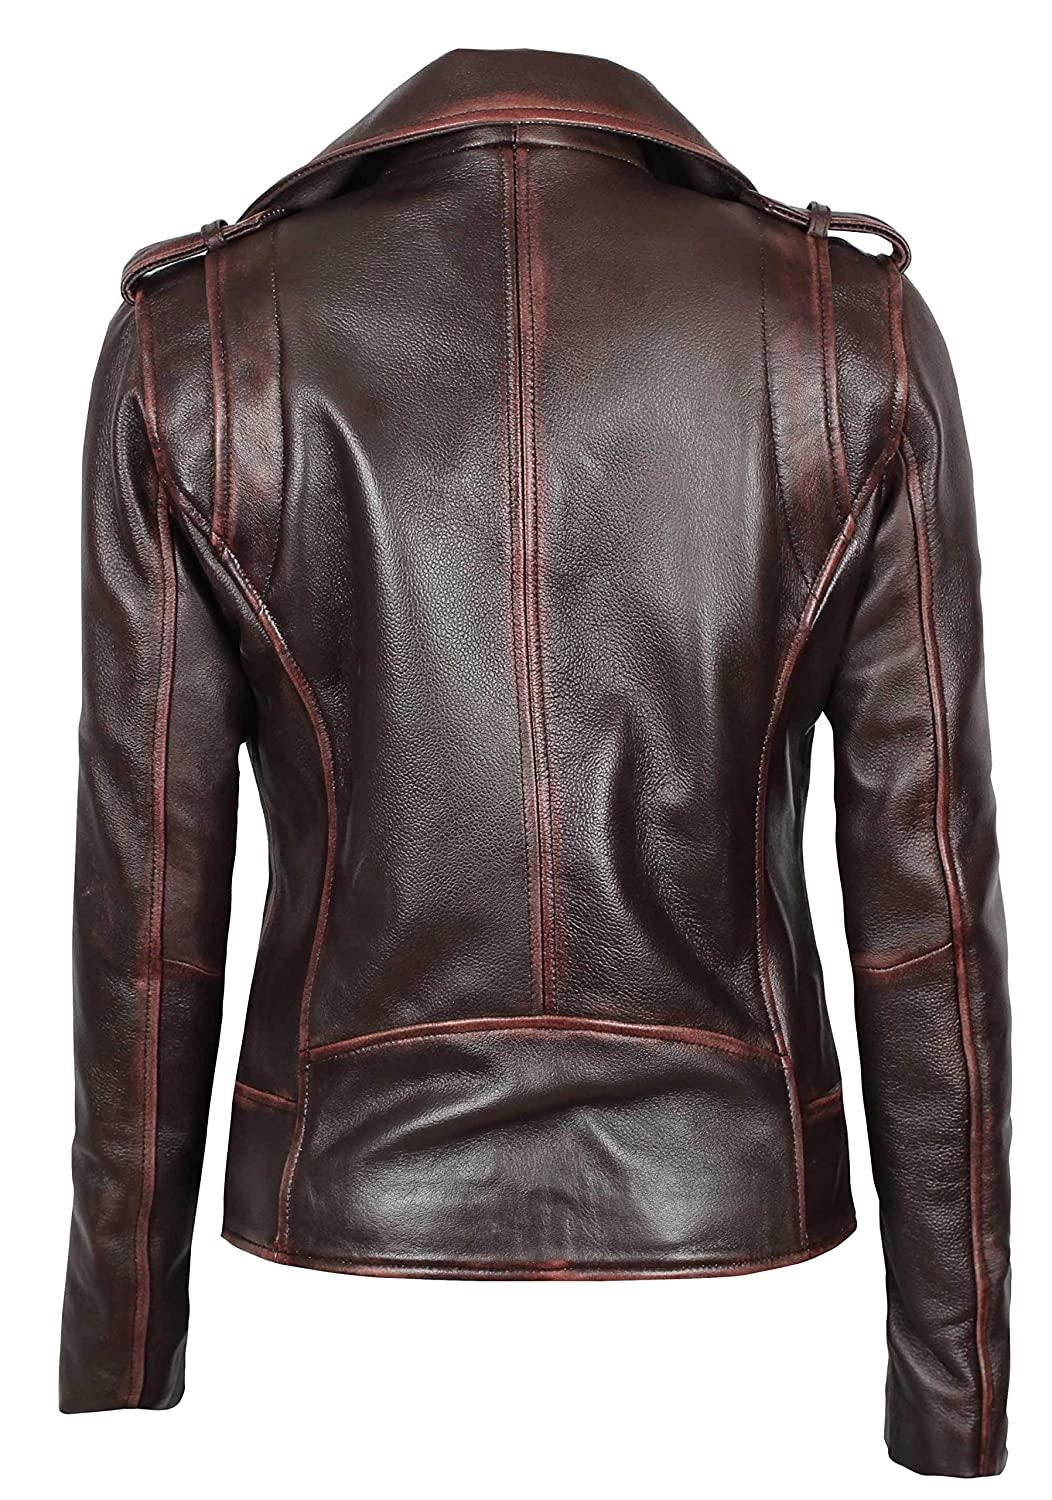 Decrum Womens Lambskin Leather Jacket Asymmetrical Real Leather Jackets for Women